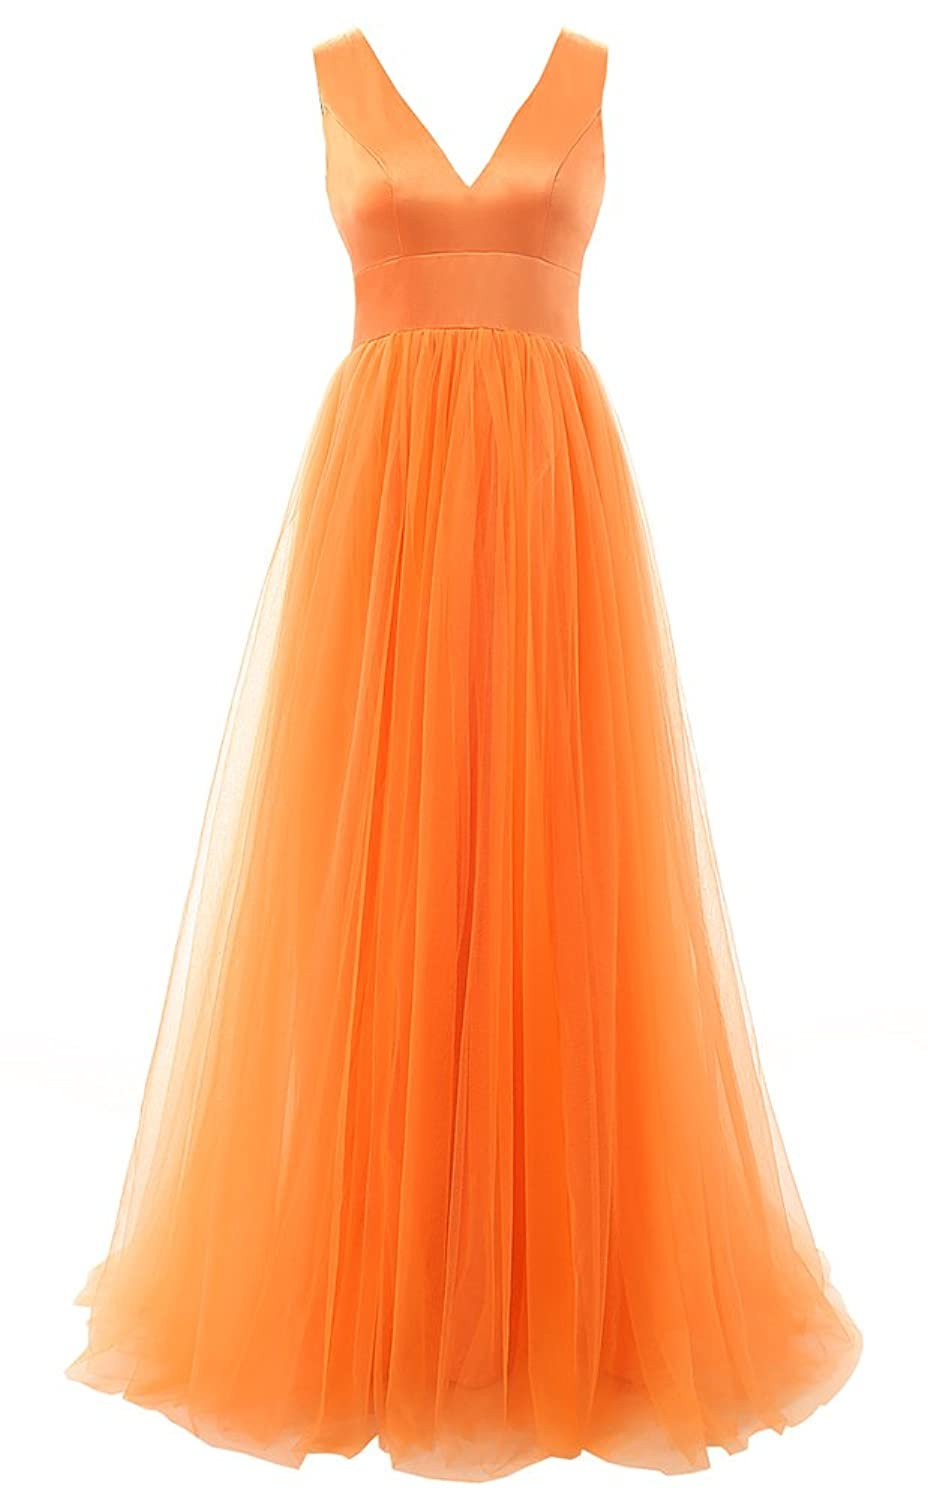 Baijinbai Women's Orange Long Tulle Formal Homecoming Bridesmaid Party Prom Dresses